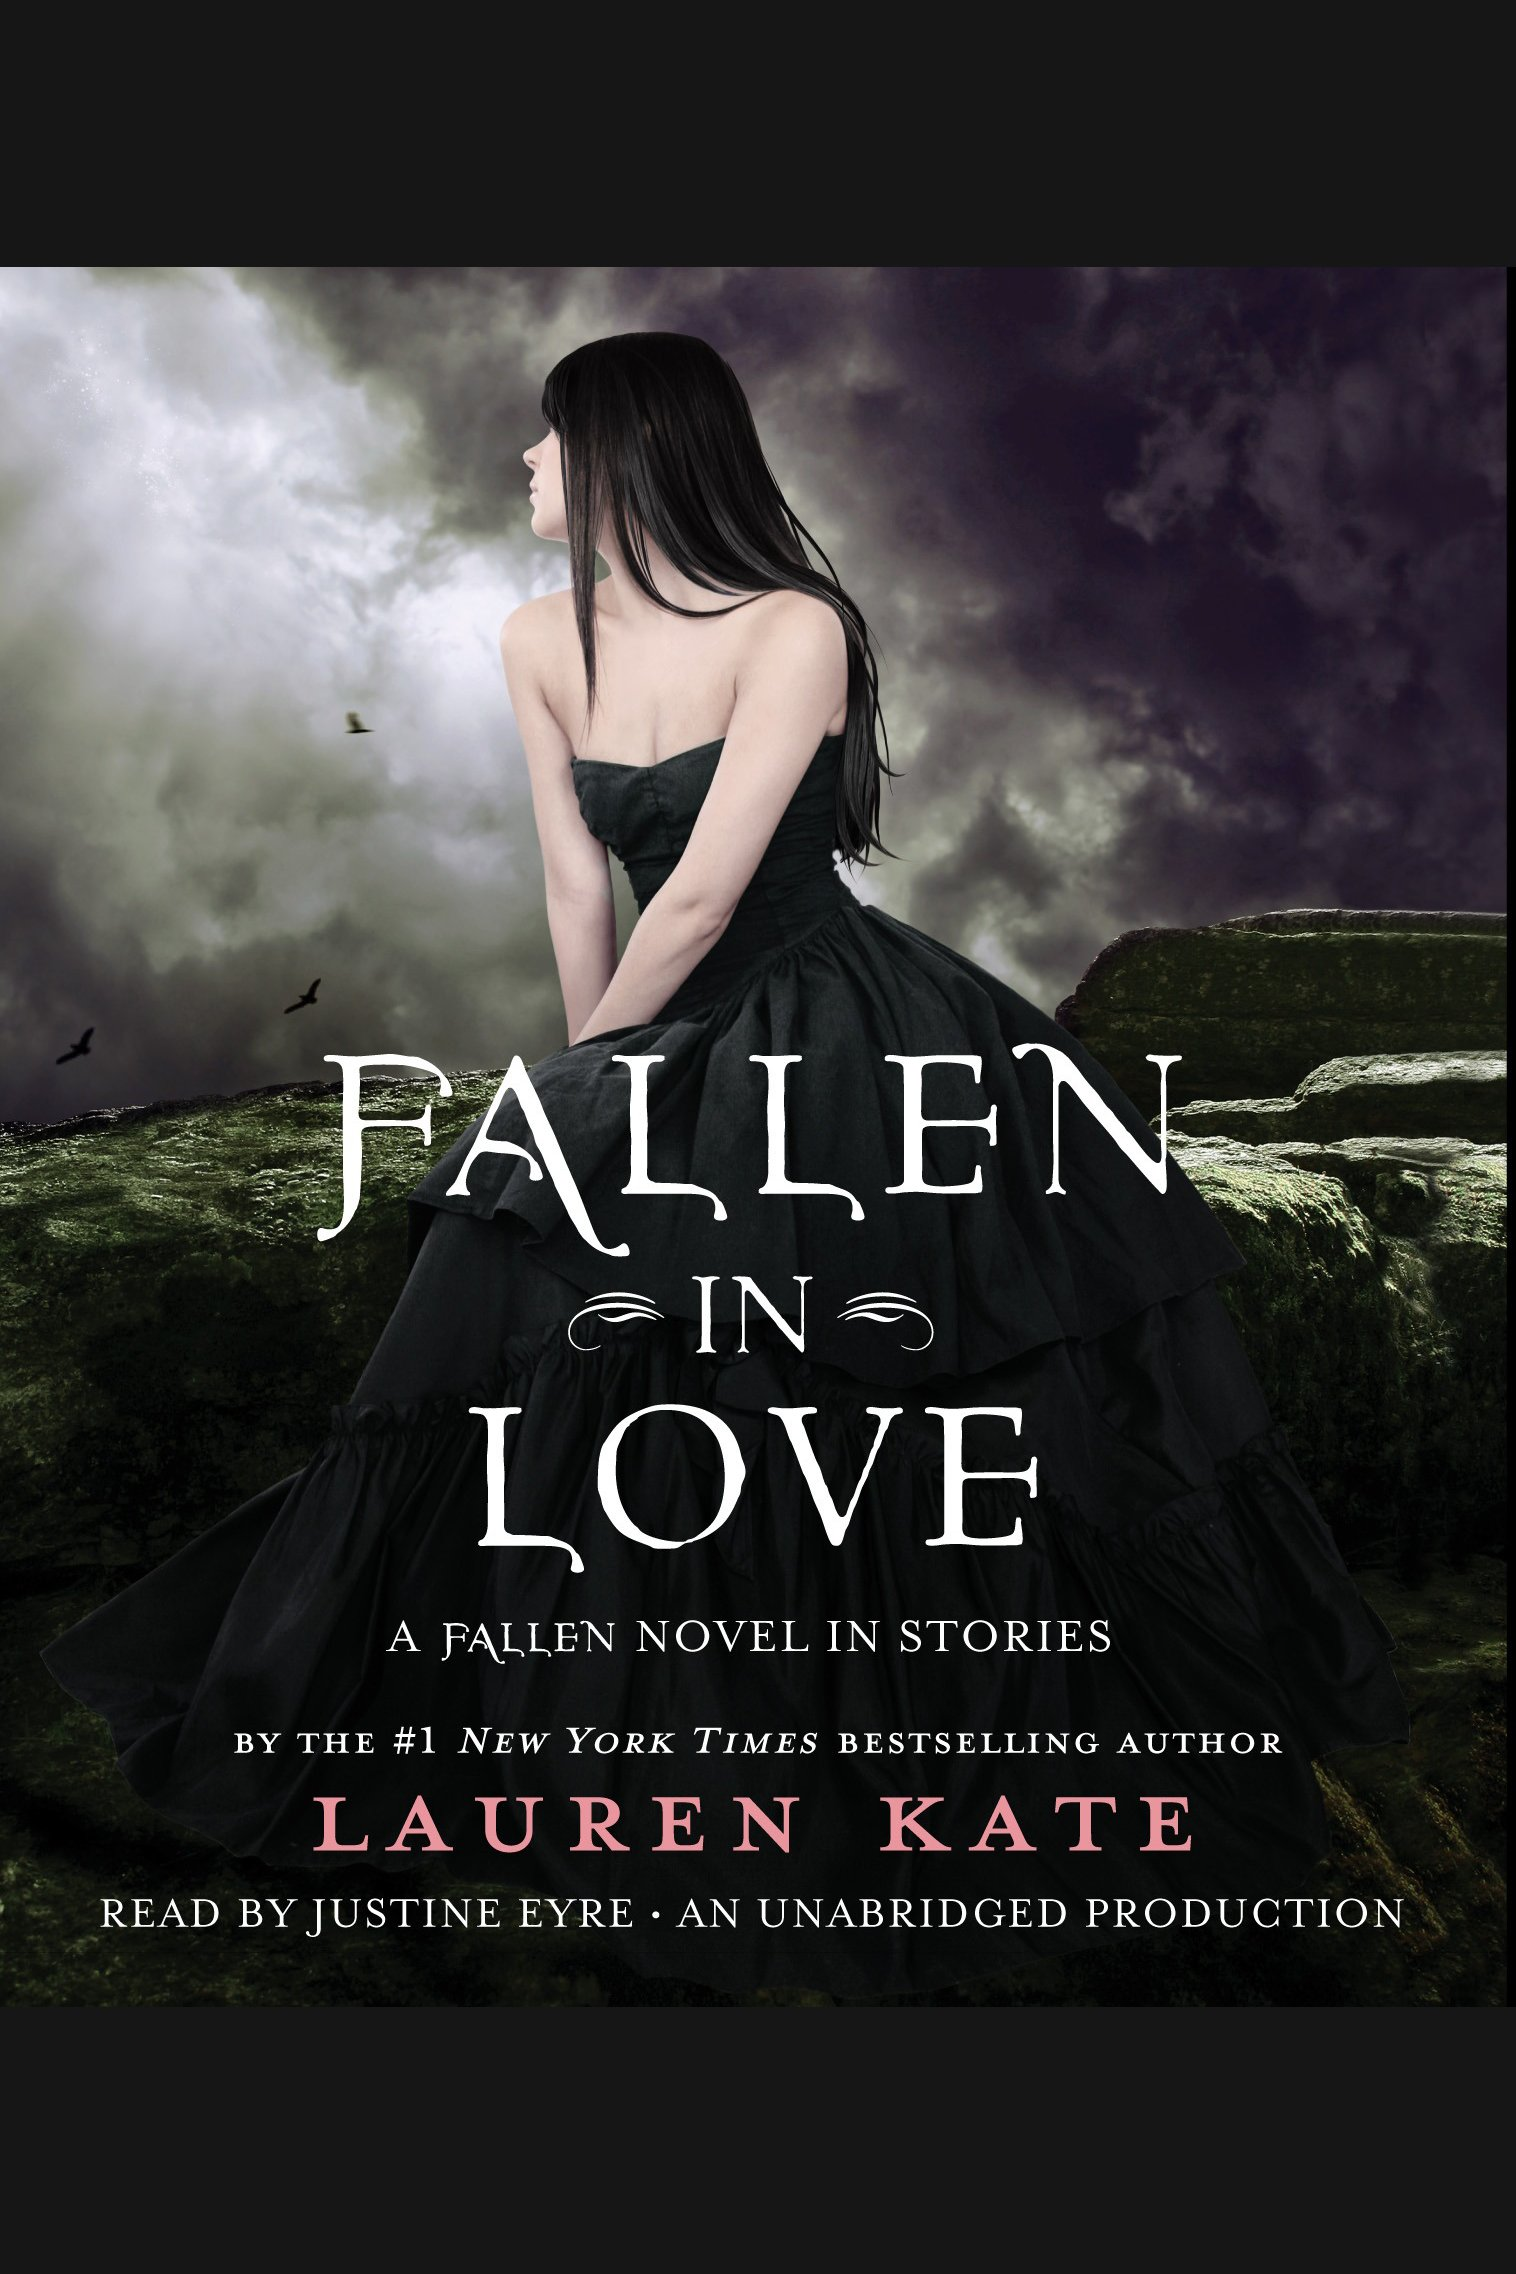 Fallen in love cover image